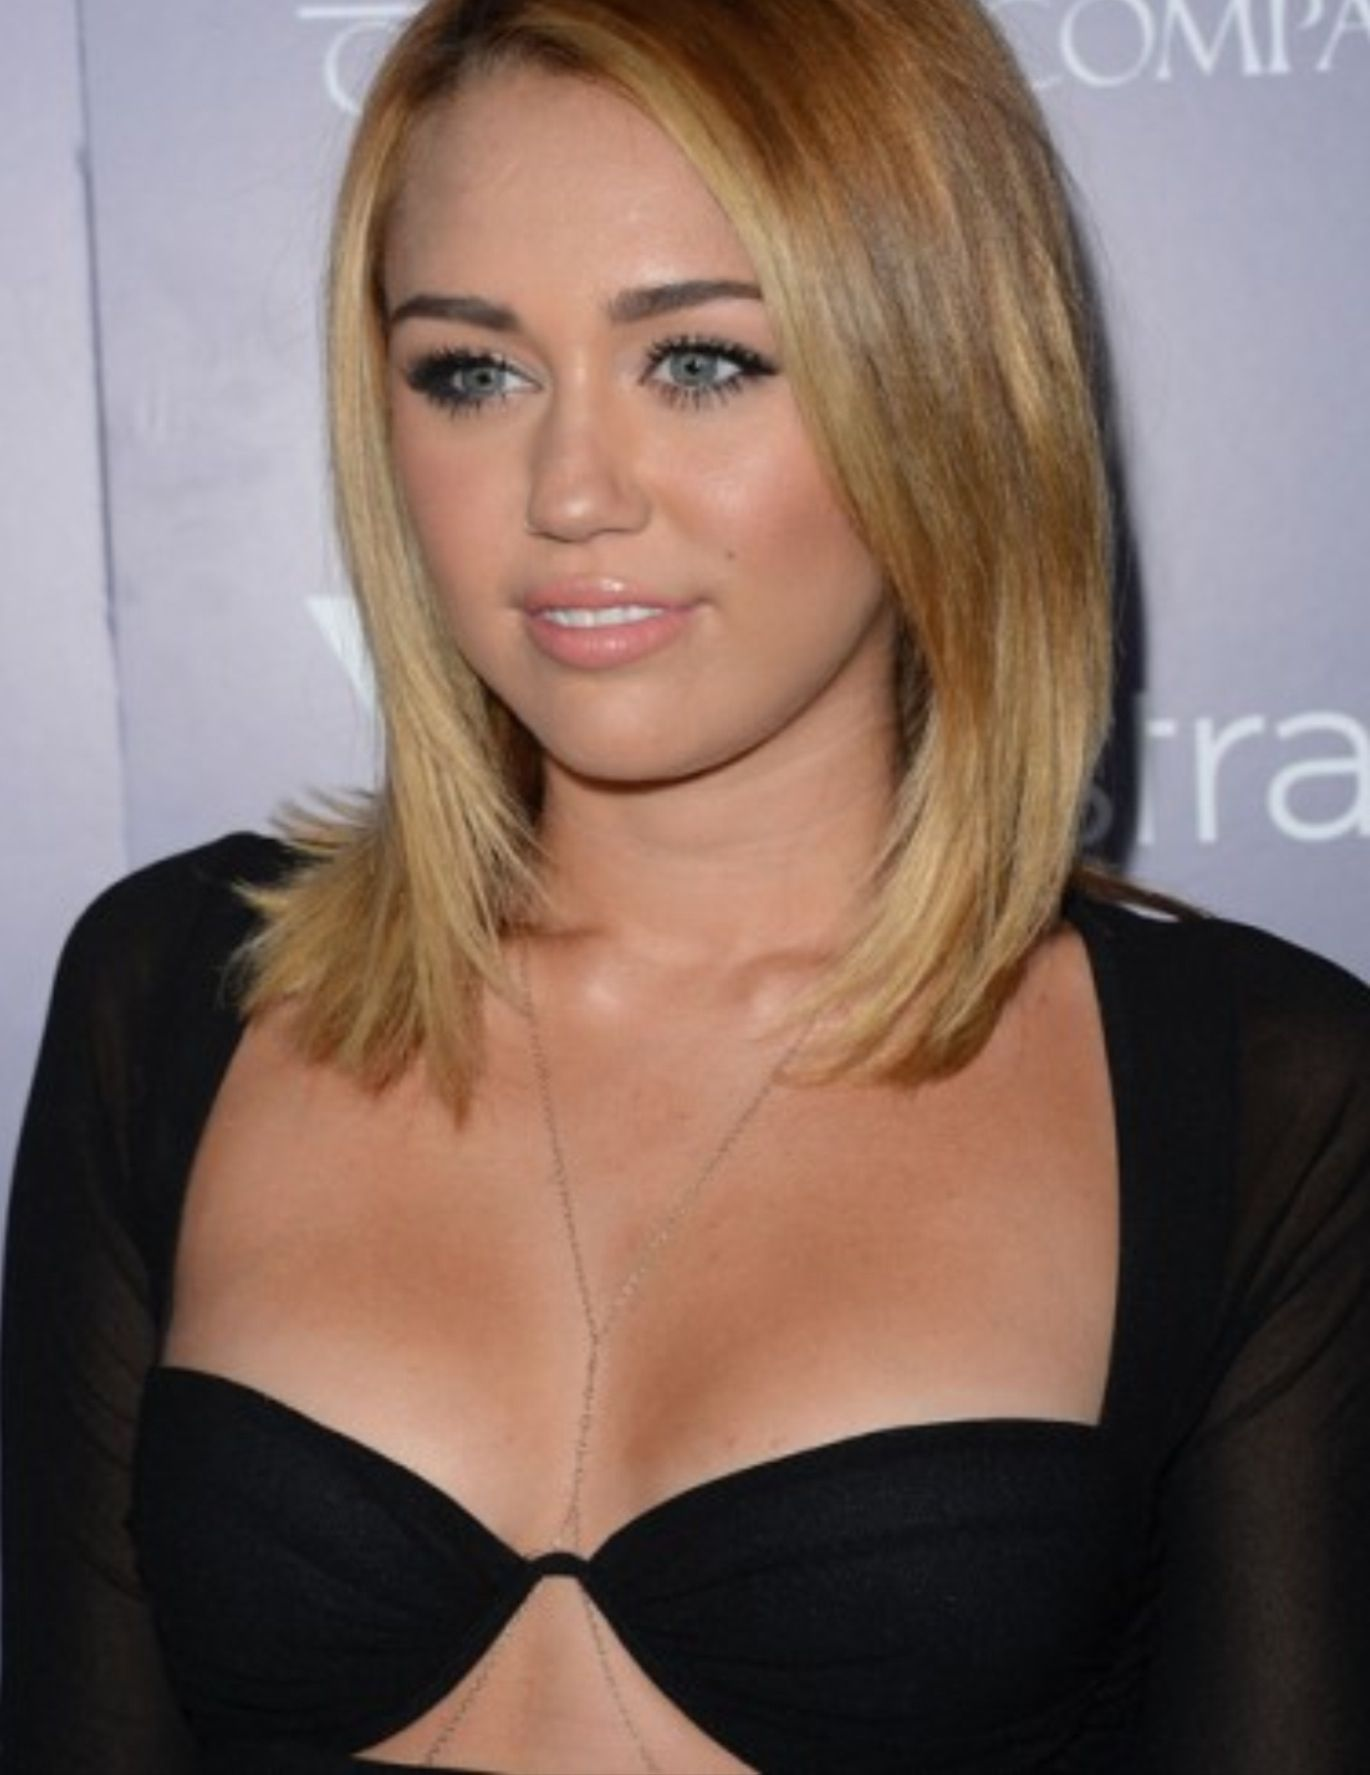 Miley Cyrus Mid Length Hair Miley Cyrus Long Hair Miley Cyrus Hair Long Hair Styles